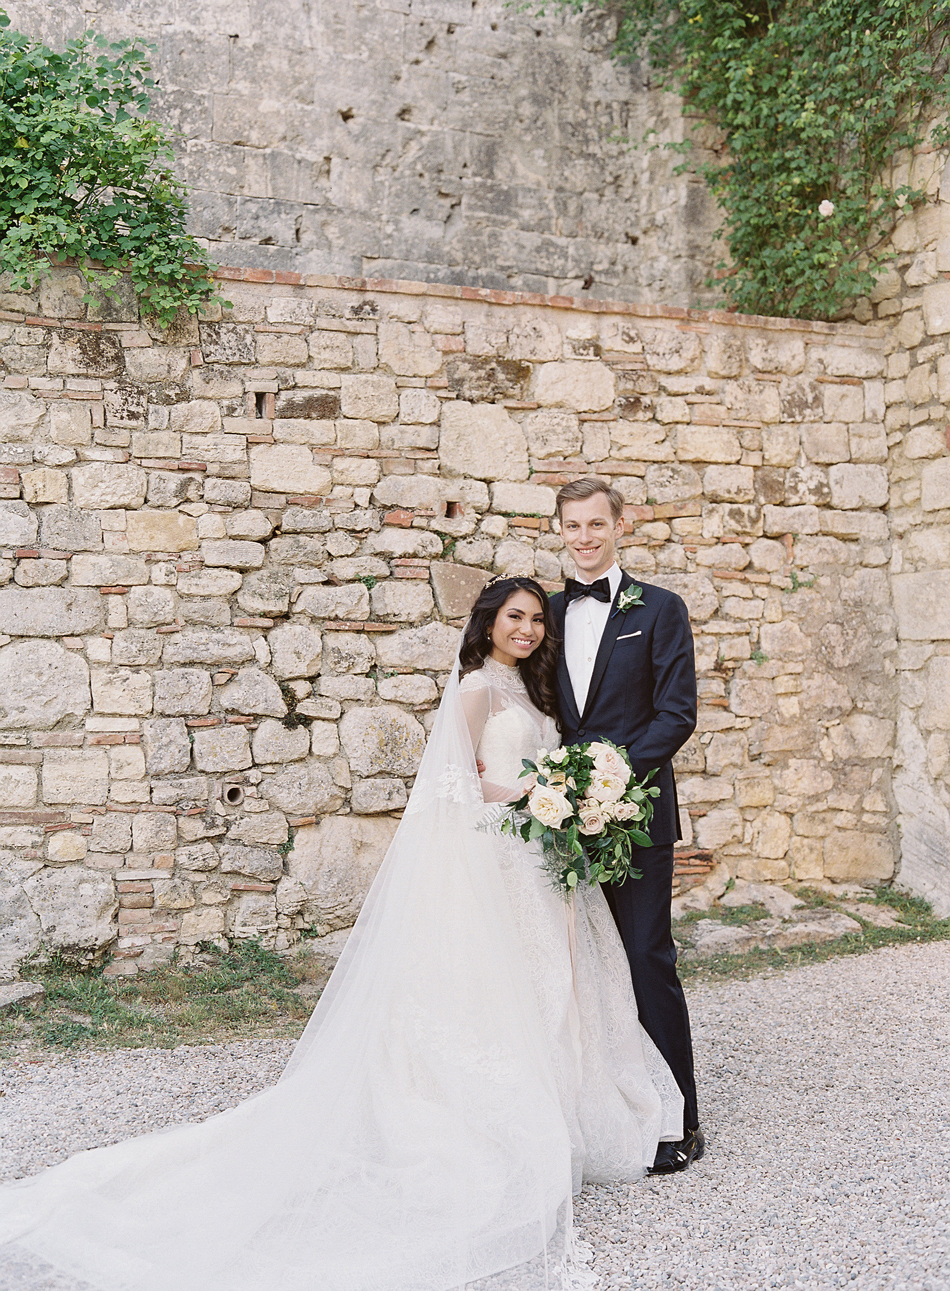 This Couple Chose a Soft Color Palette for Their Elegant Wedding in Tuscany